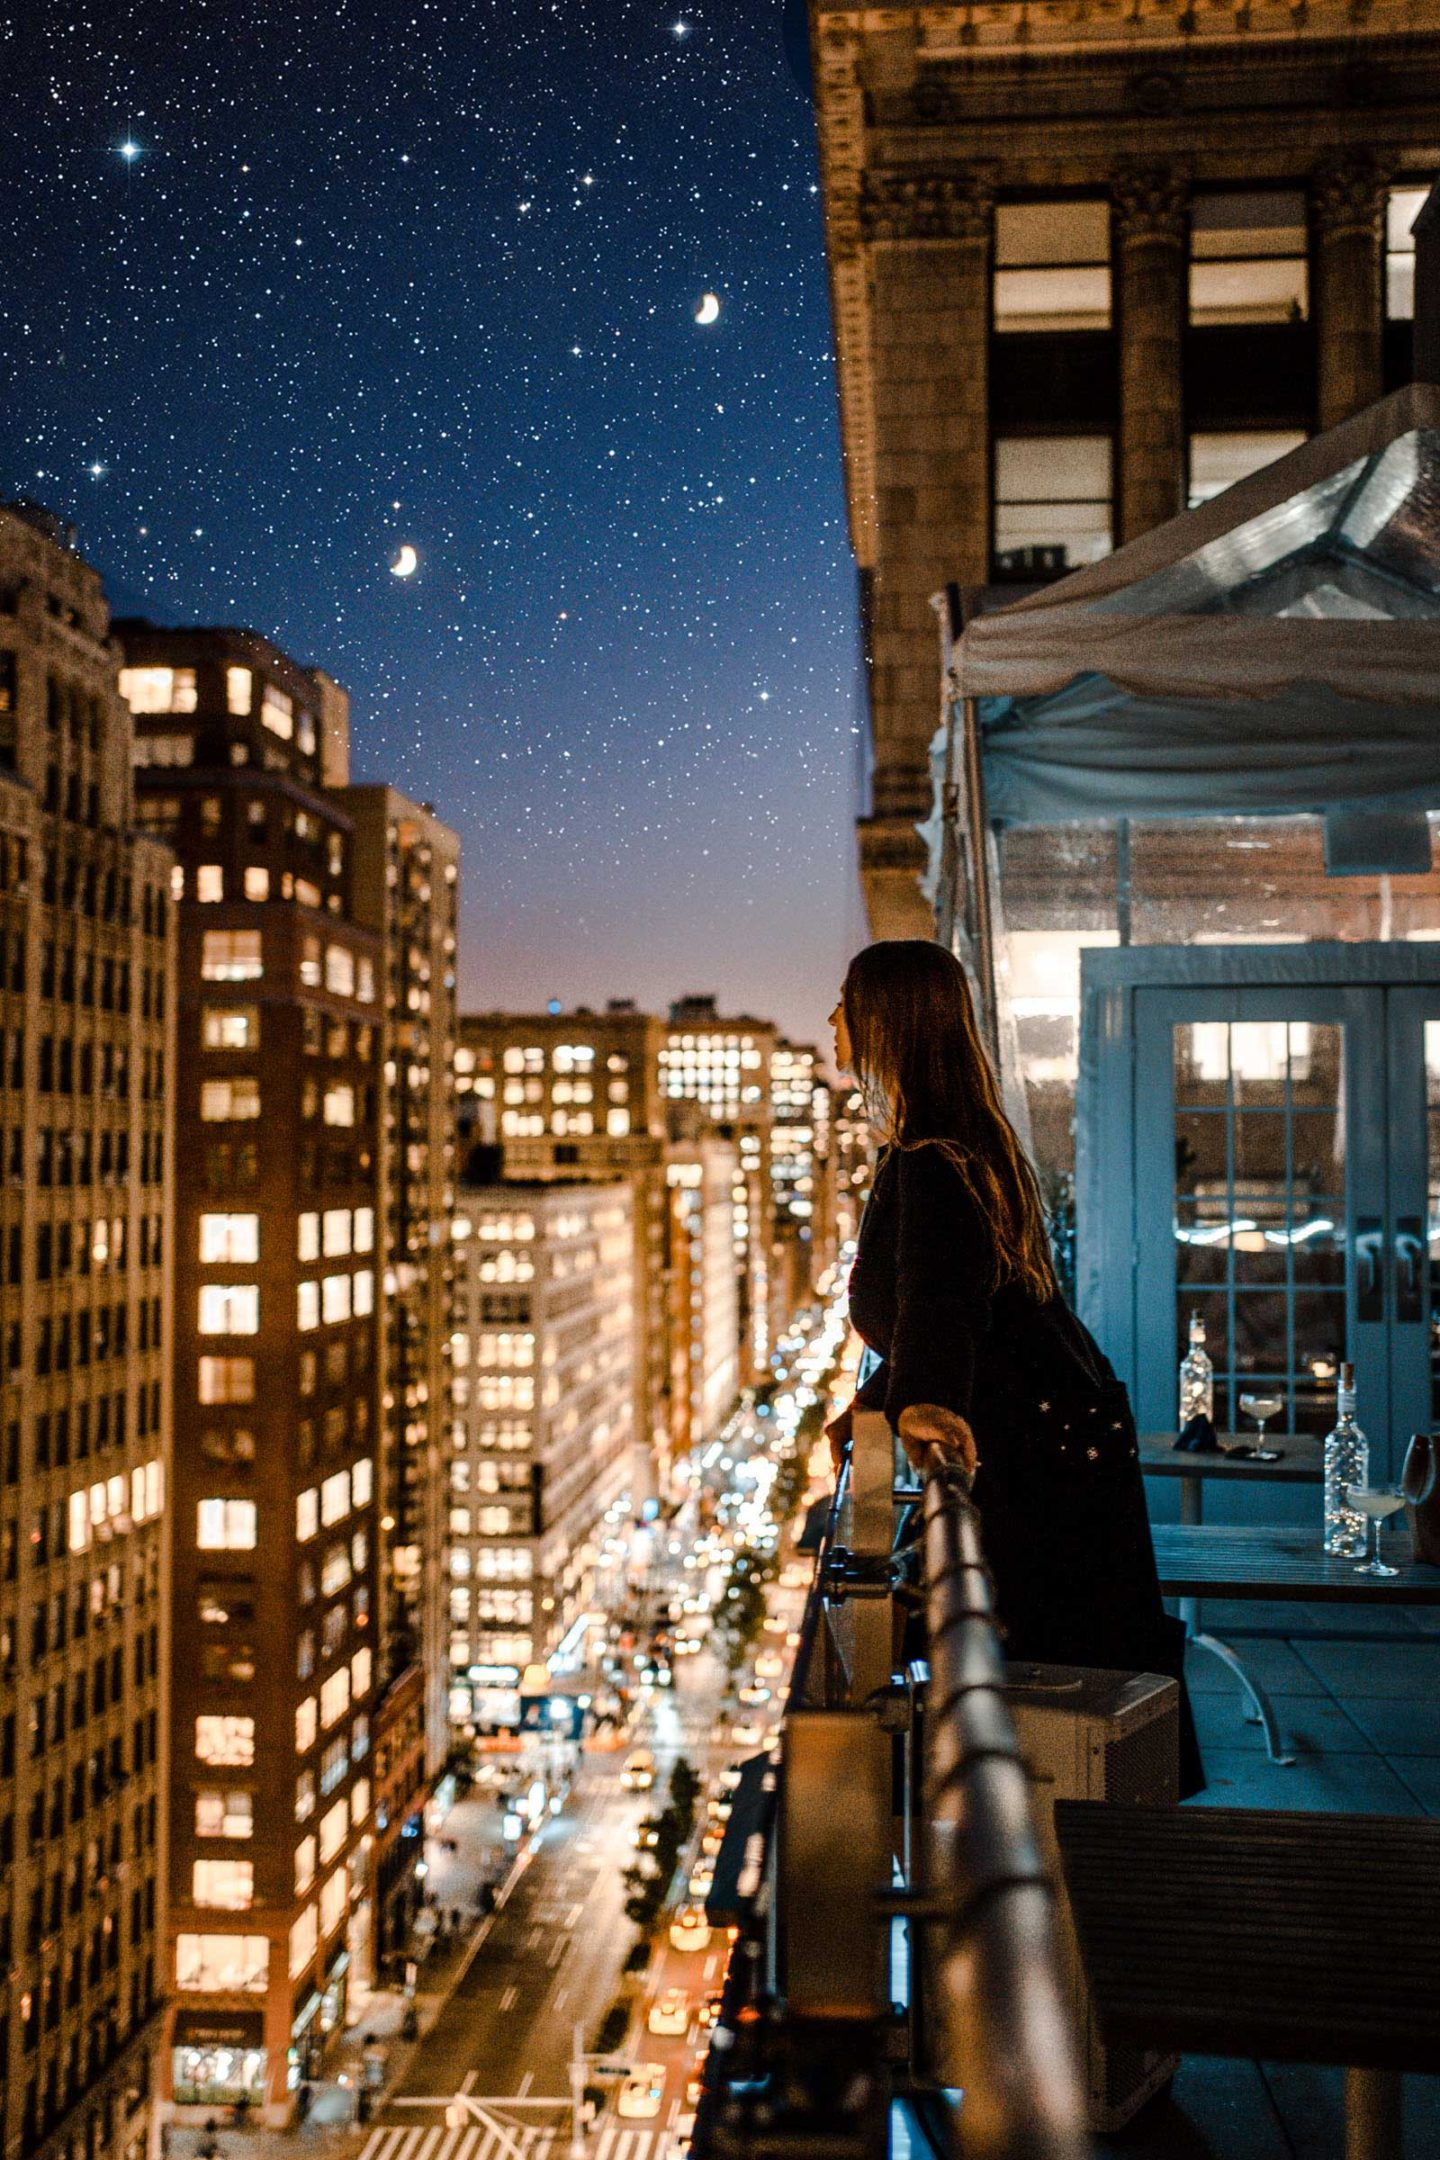 I will show you how to add Stars fast and easy. Photoshop Tutorial under 5 simple steps! Perfect for adding stars to your Instagram photos. Photoshop tutorial for beginners. New York City night photography